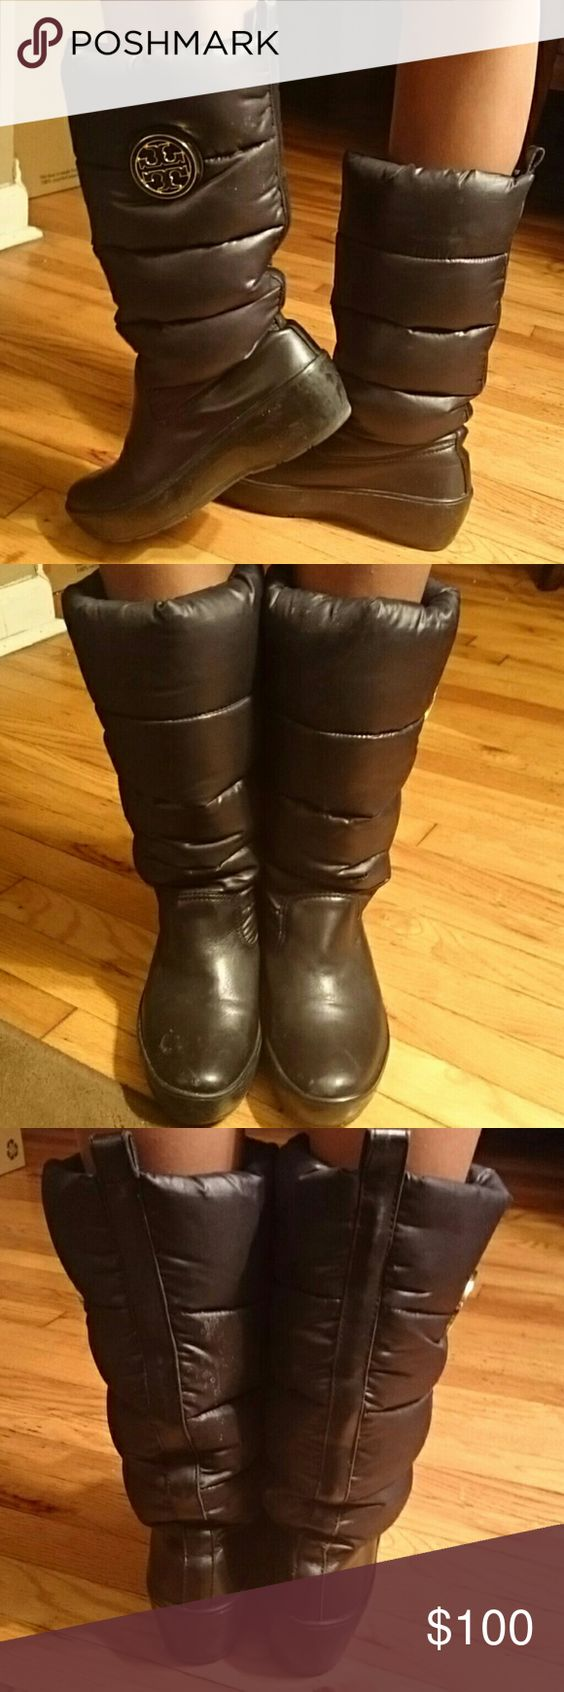 Tory Burch Puffer Boots USED w/ signs of normal wear Tory Burch Puffer Boots, size 9, black..price marked for condition..Great Buy!! Tory Burch Shoes Winter & Rain Boots